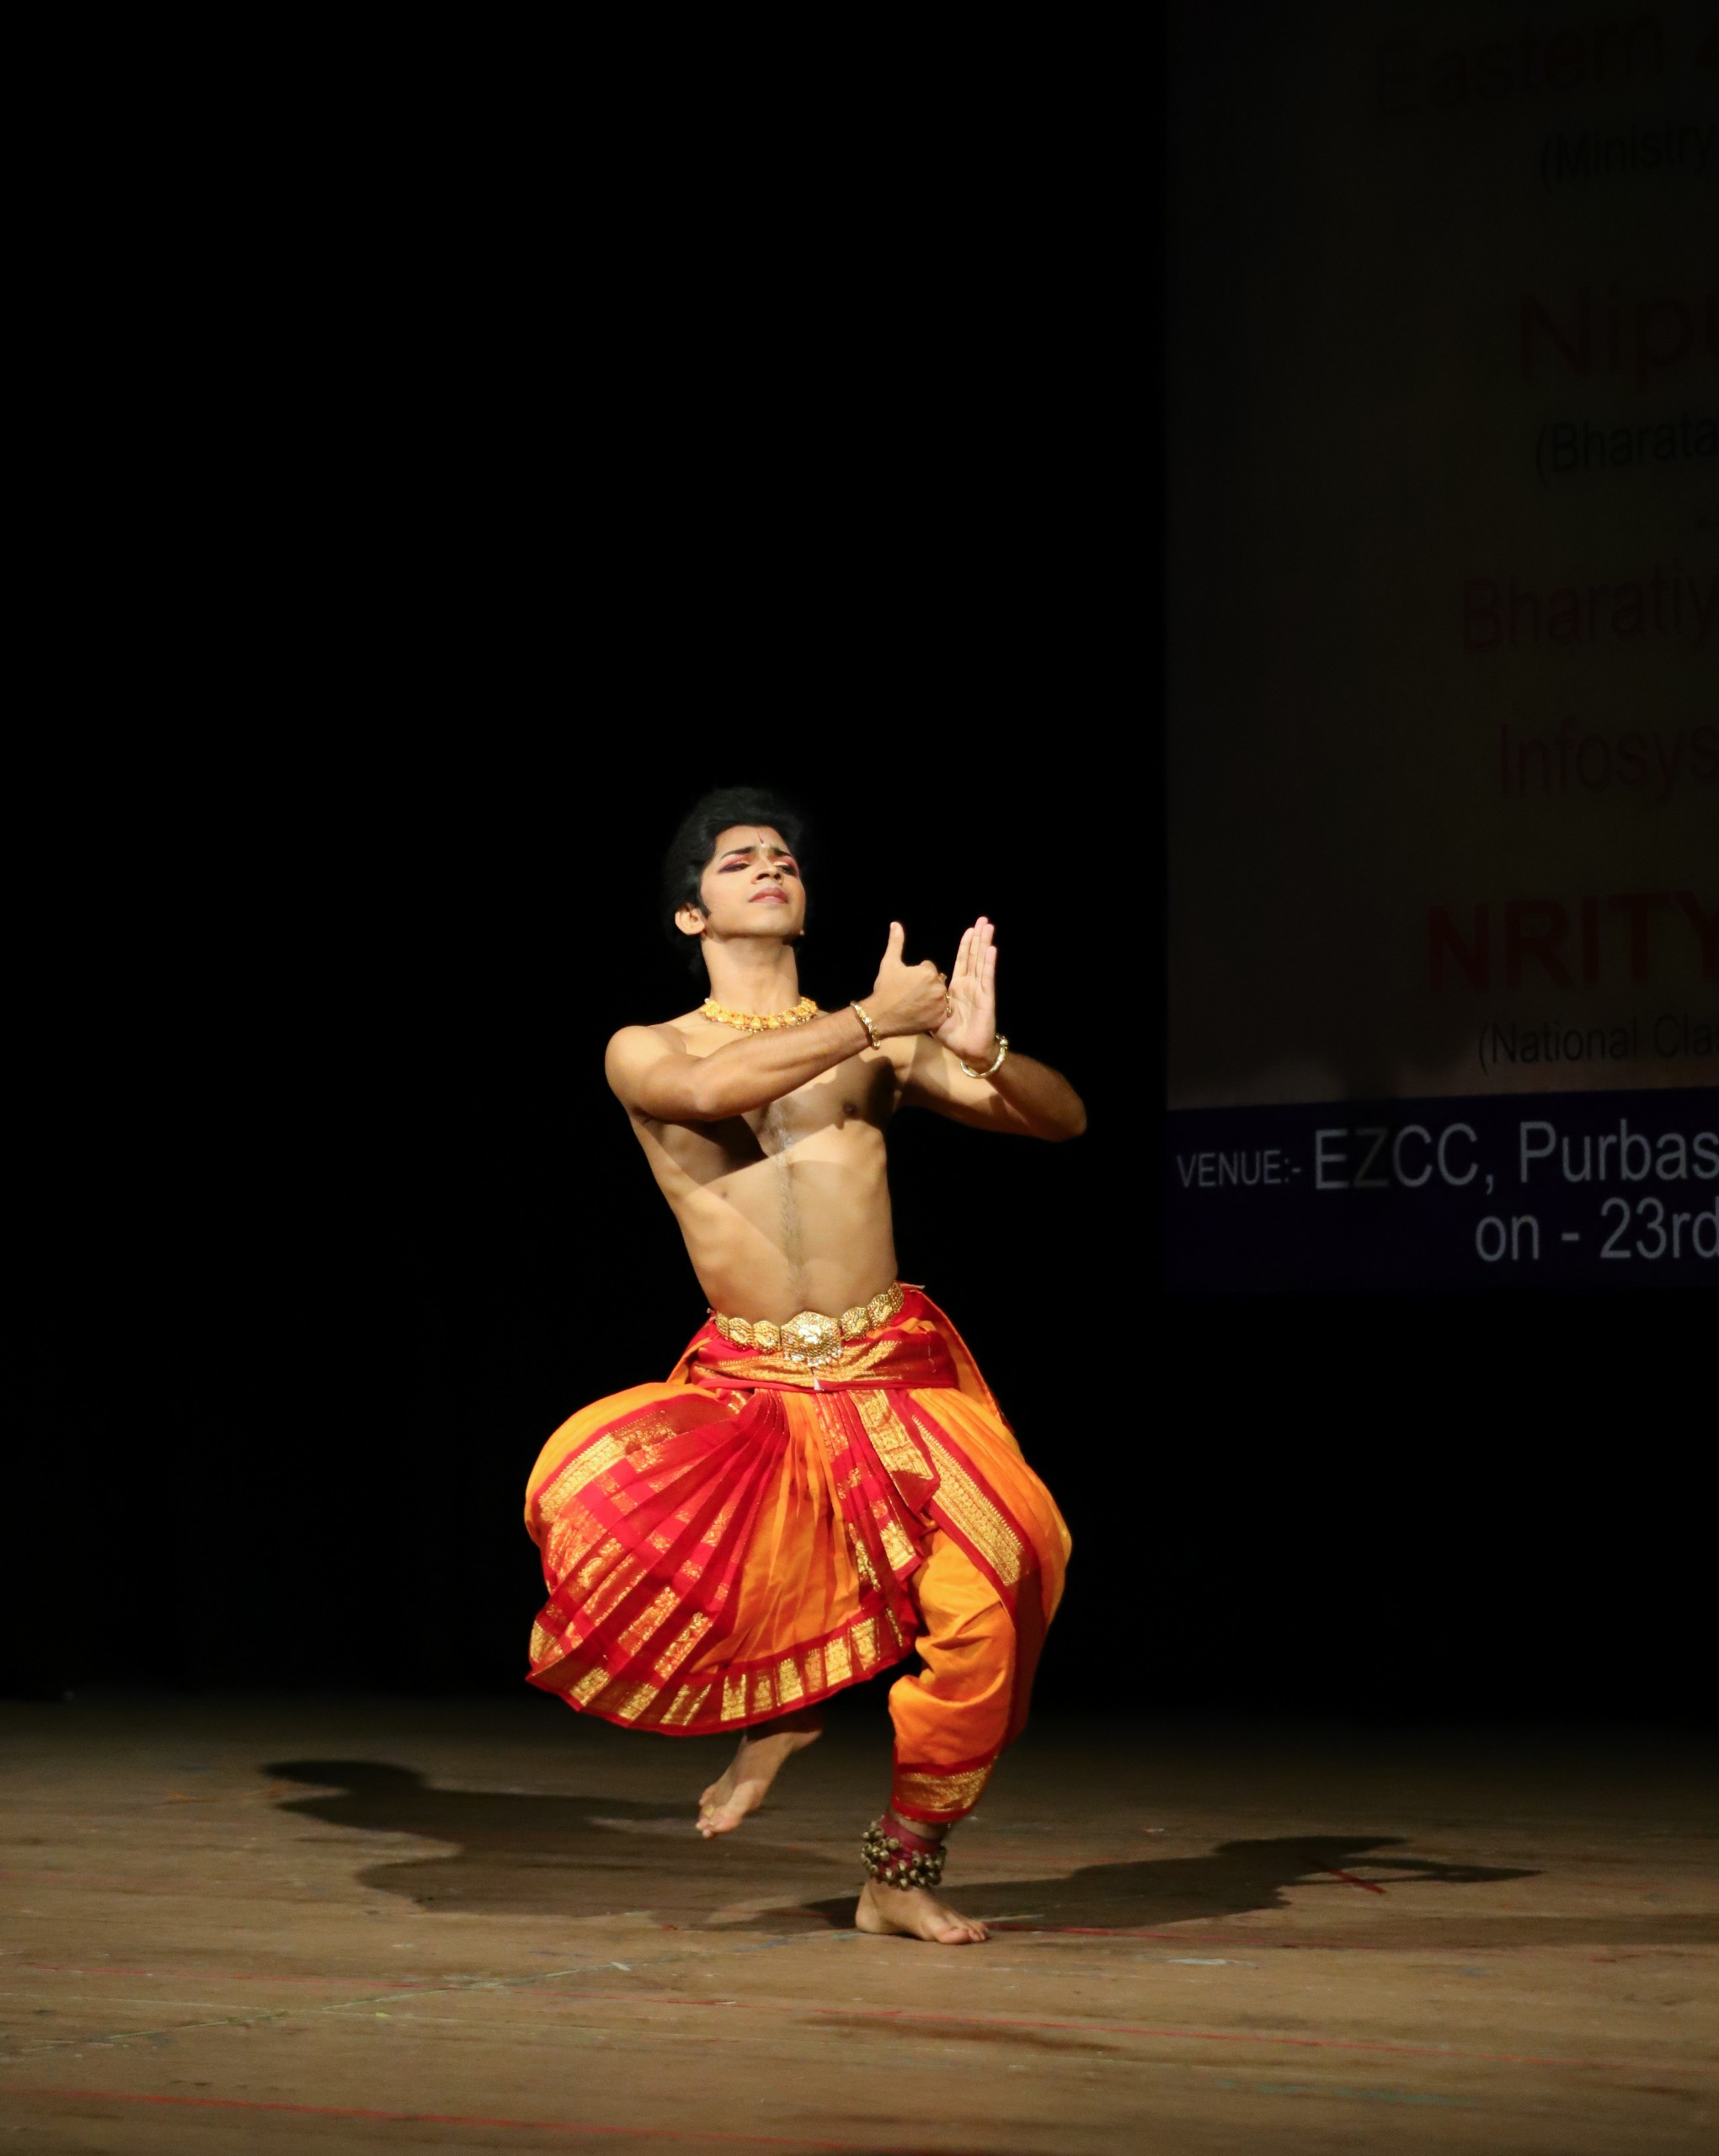 Man doing a Traditional Dance